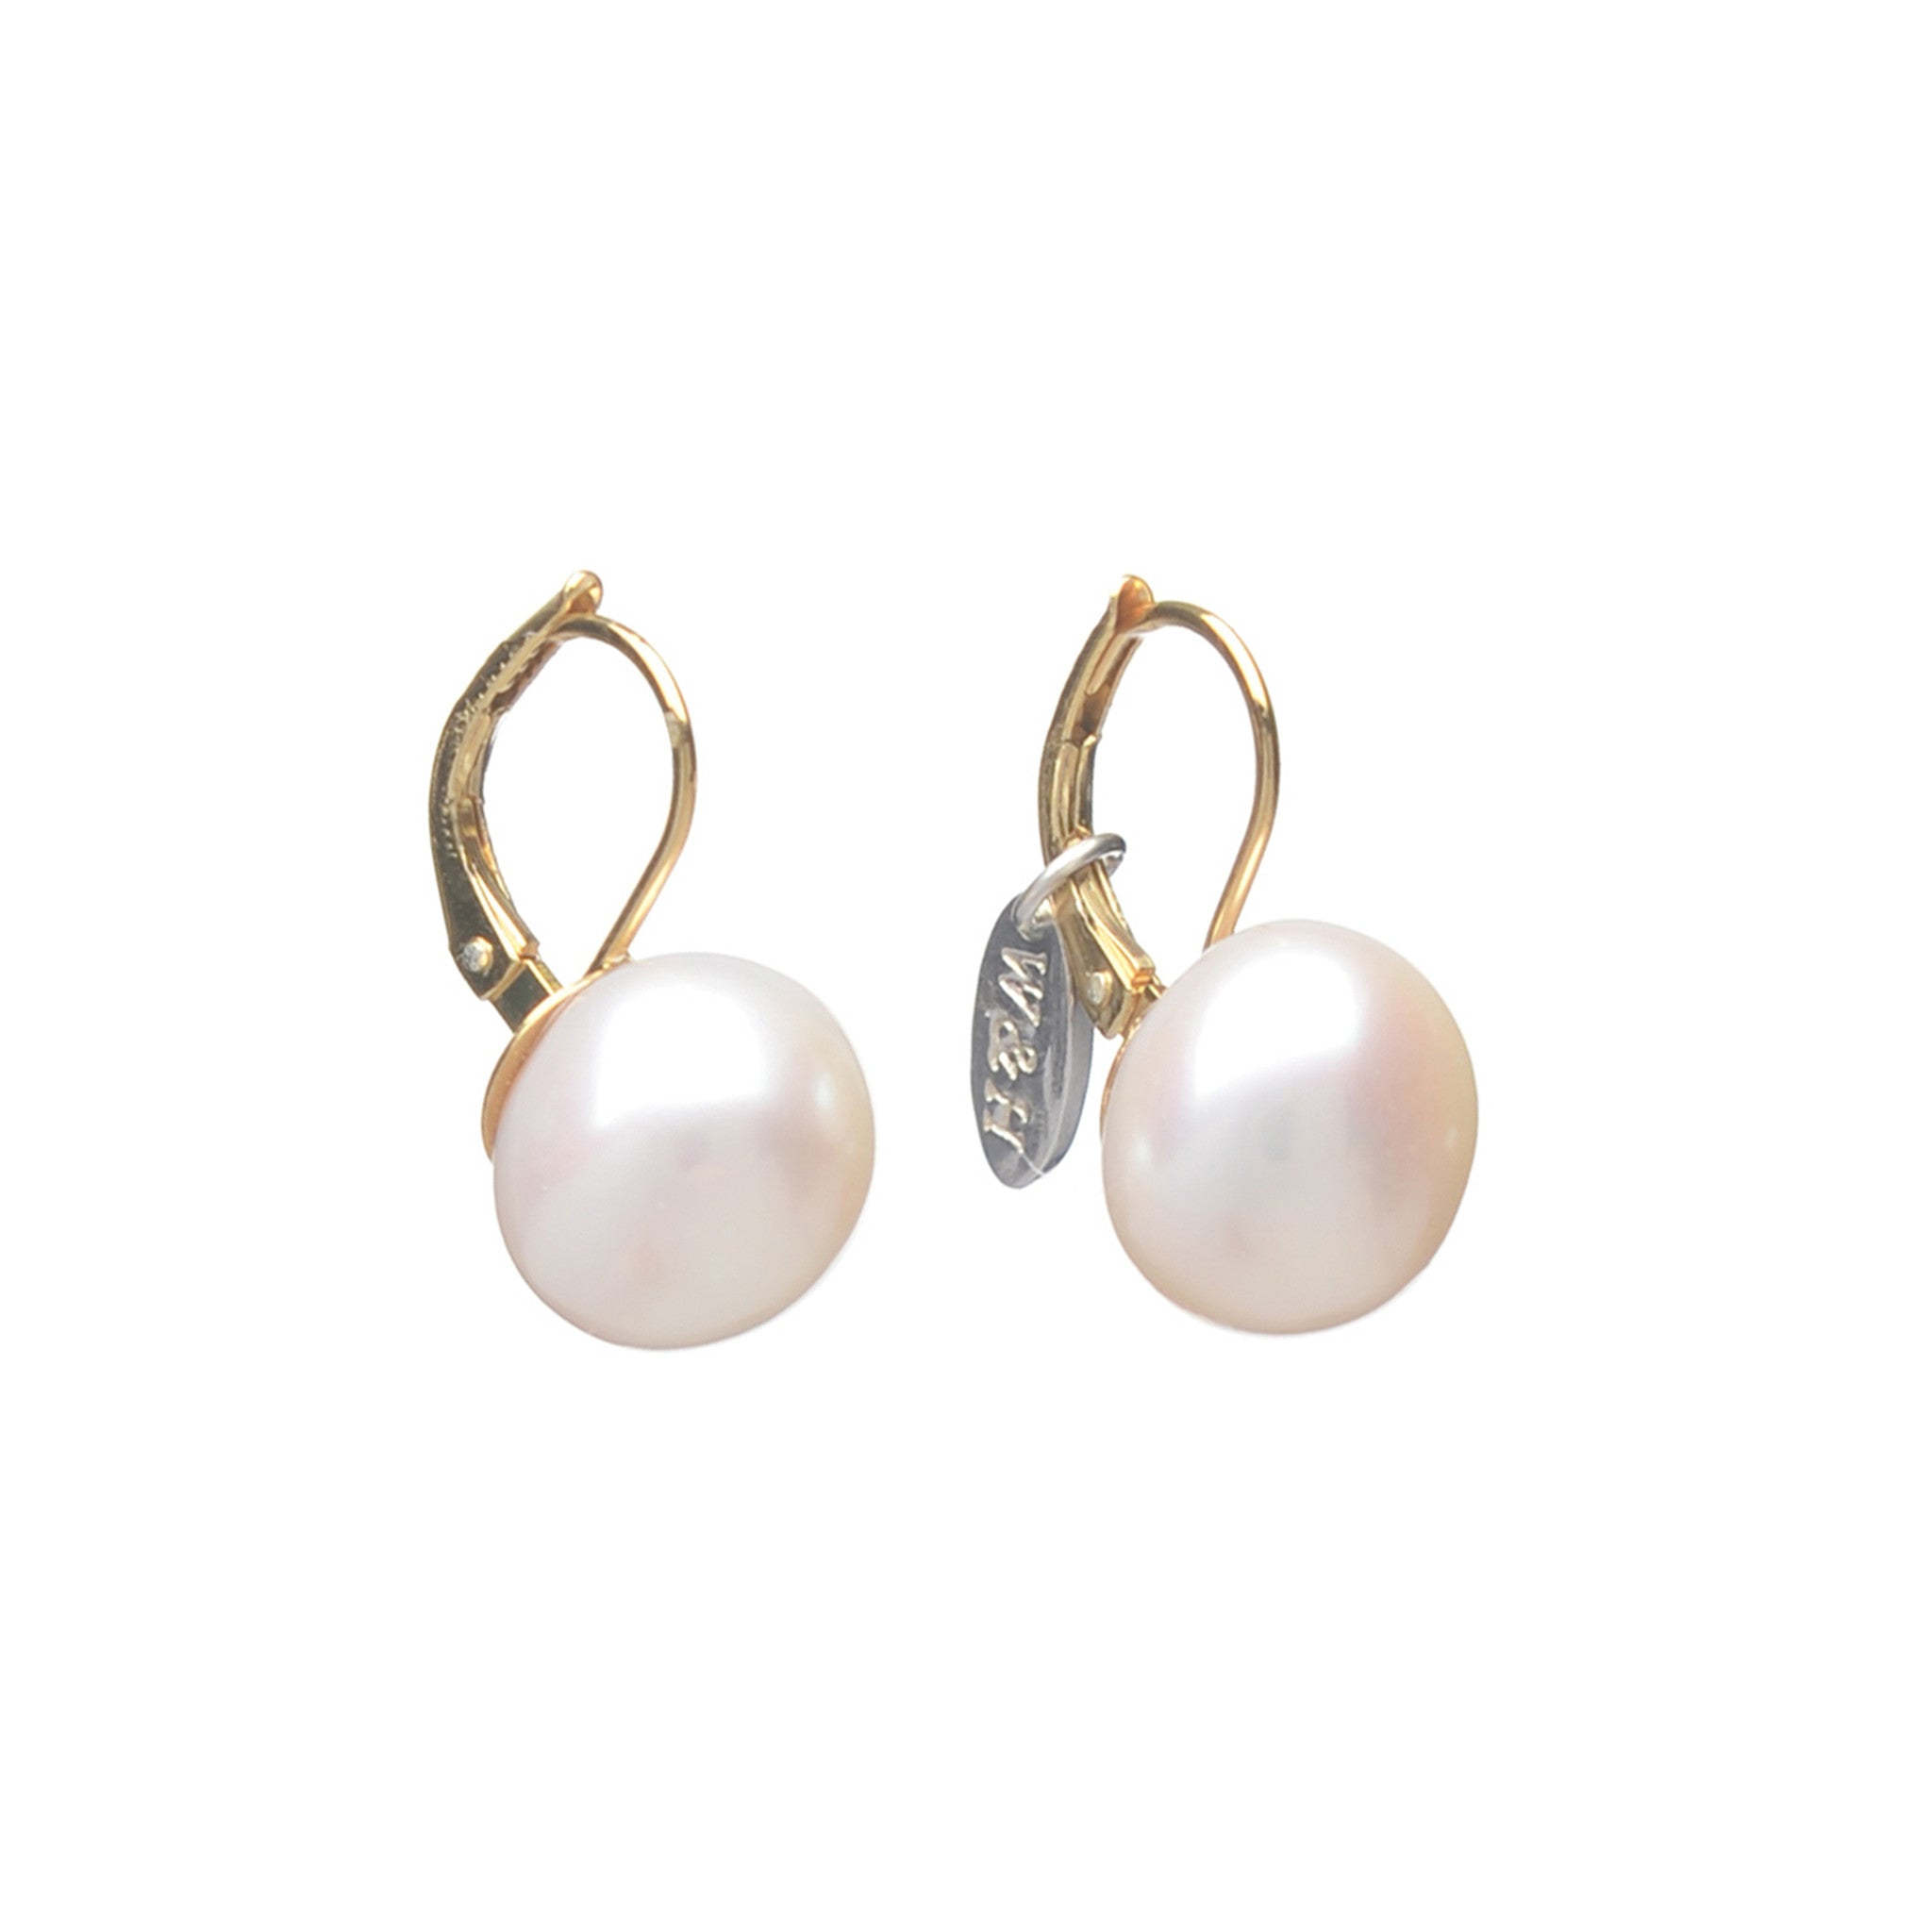 Sterling Silver leverback earrings with Freshwater Pearl